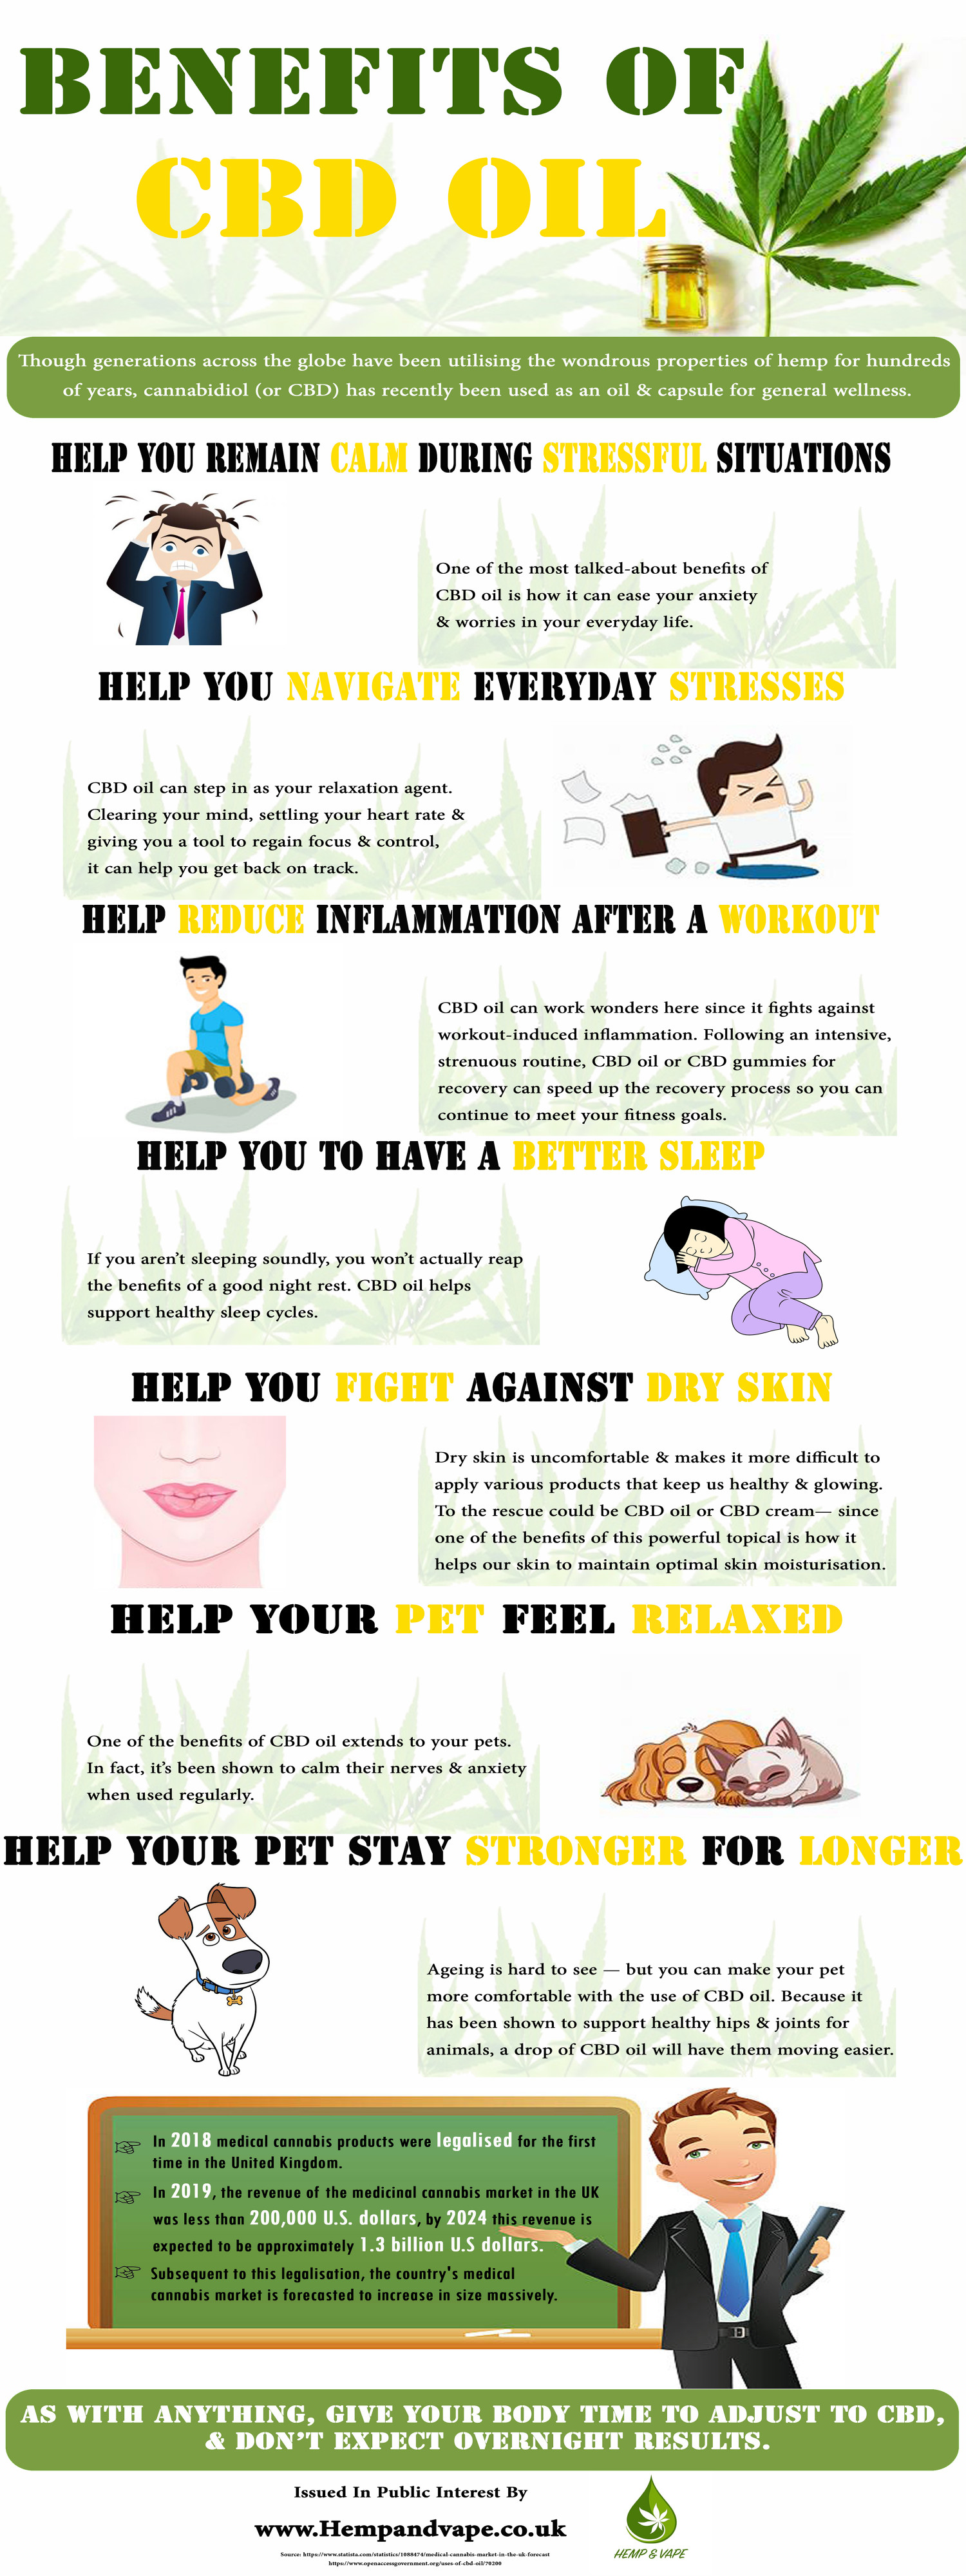 Benefits Of CBD Oil Infographic